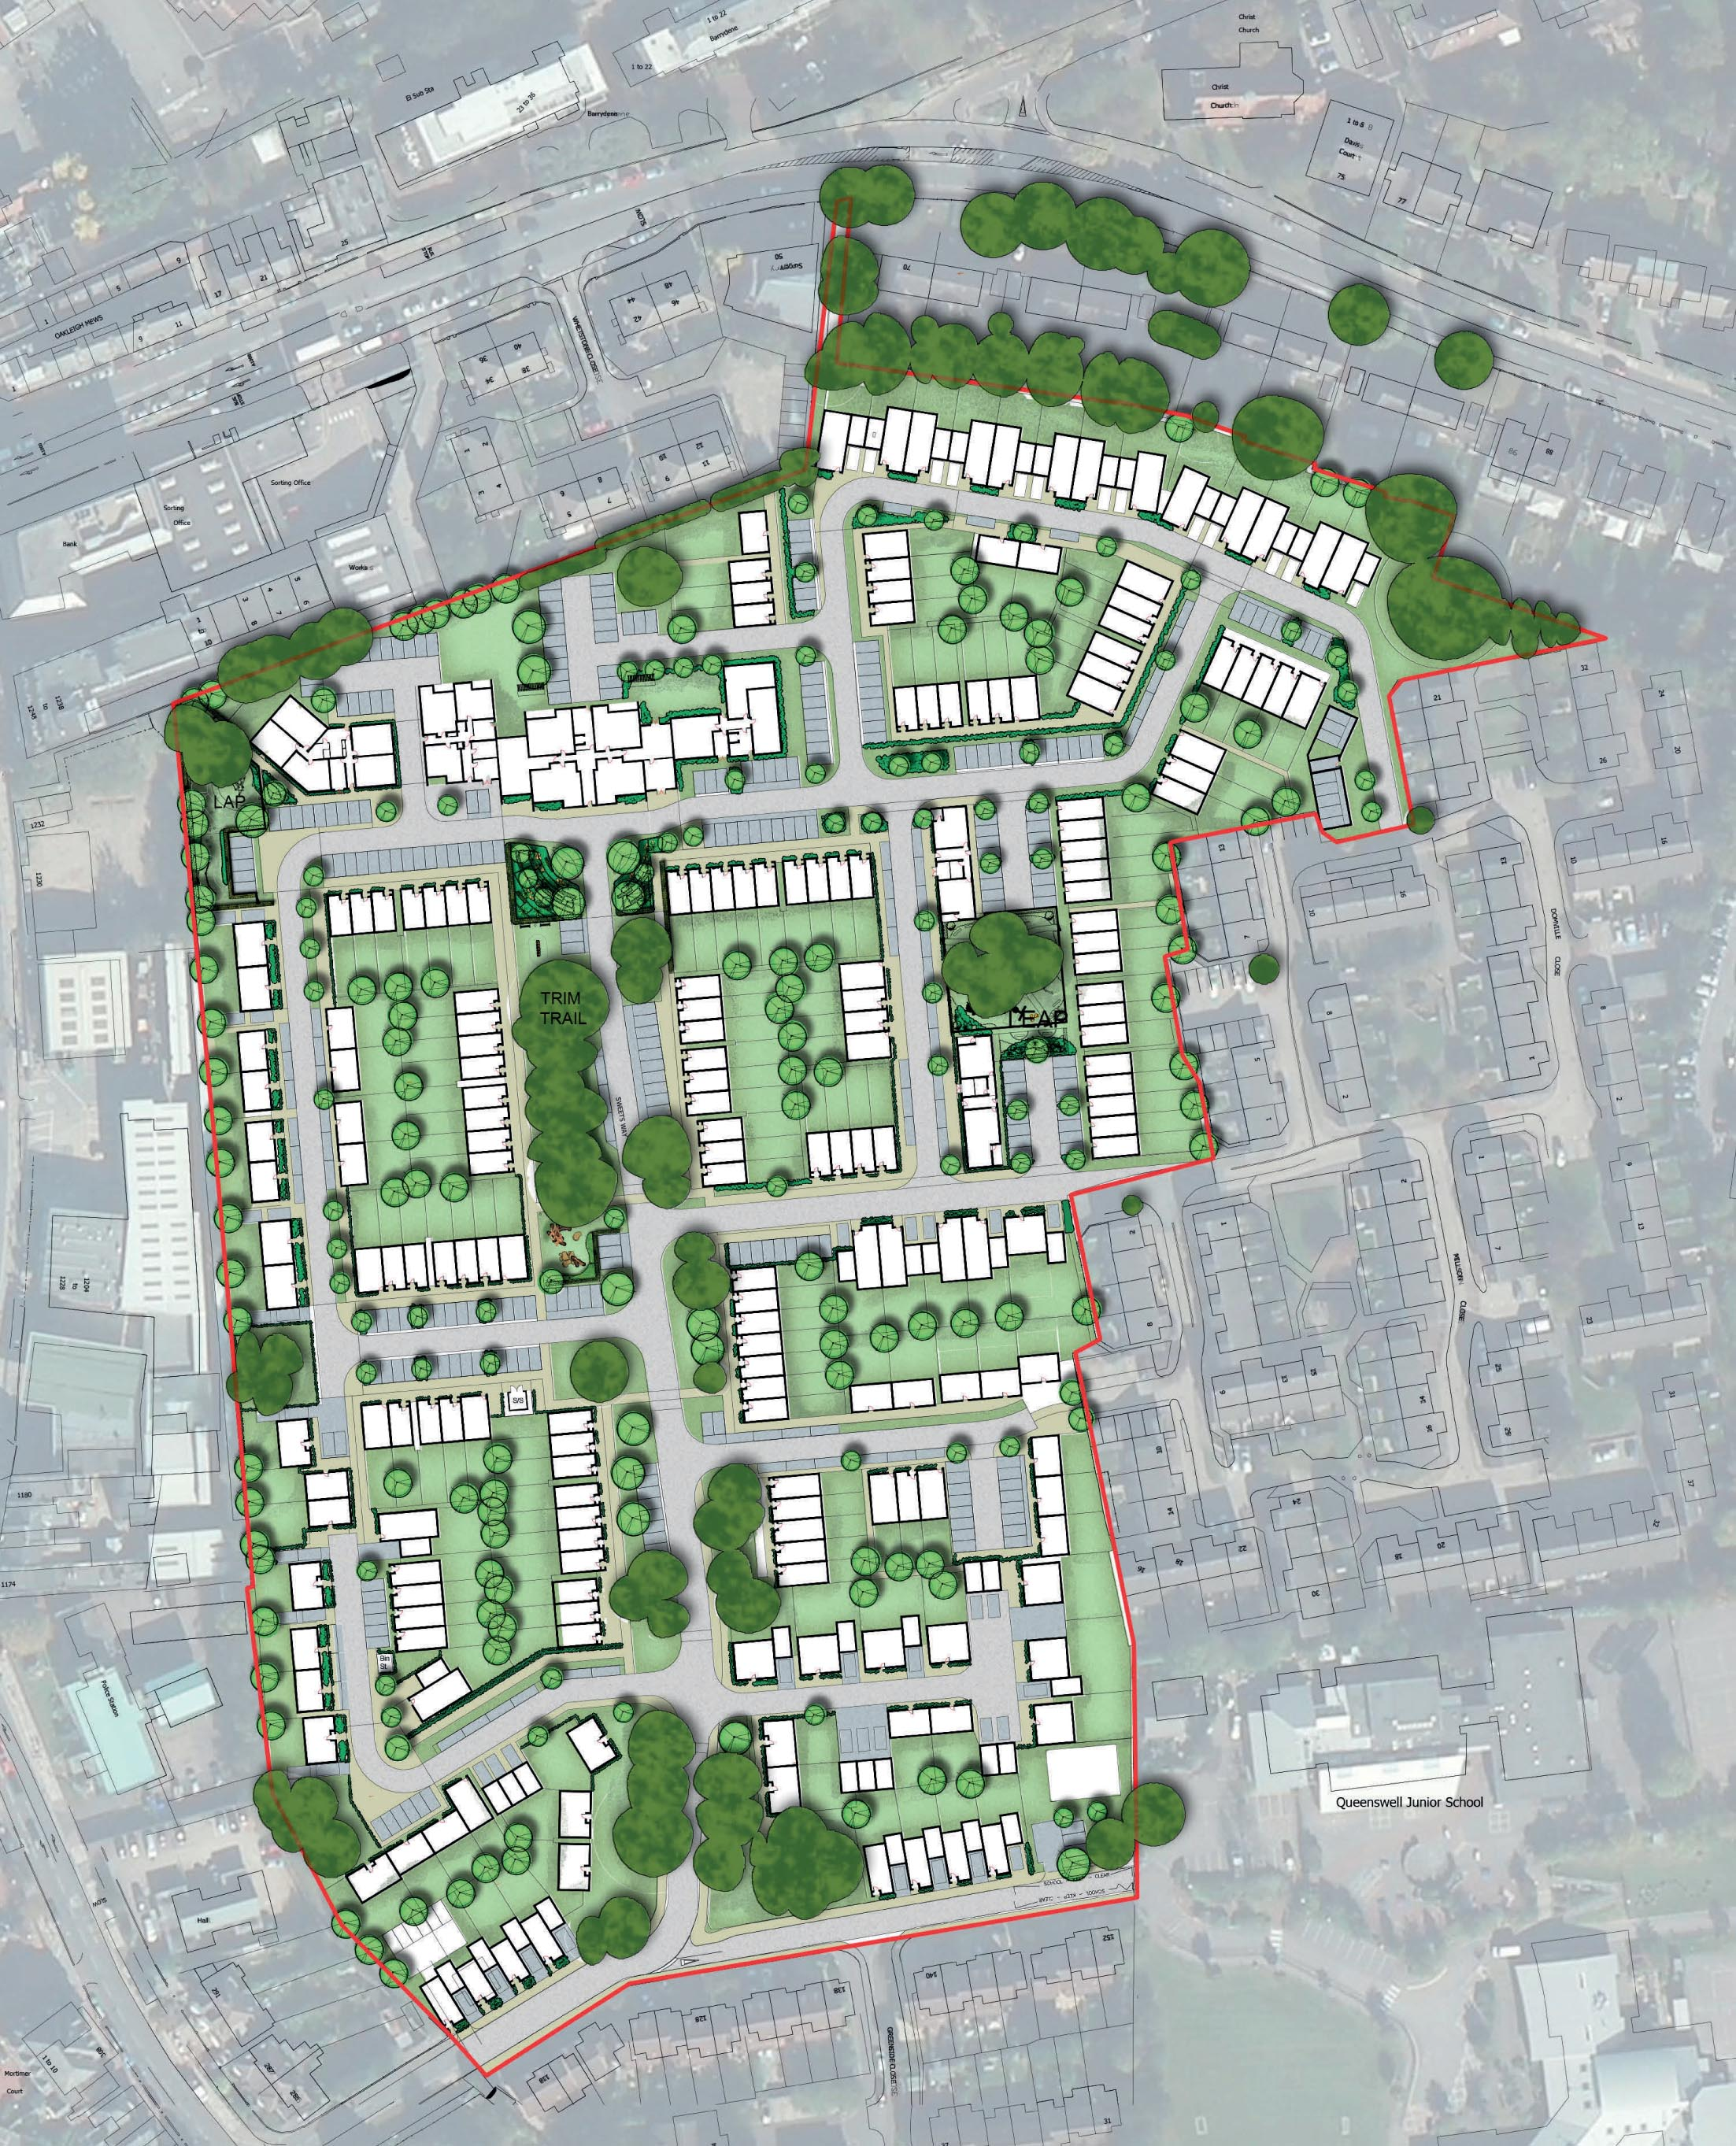 Sweets Way Park - Layout Plan